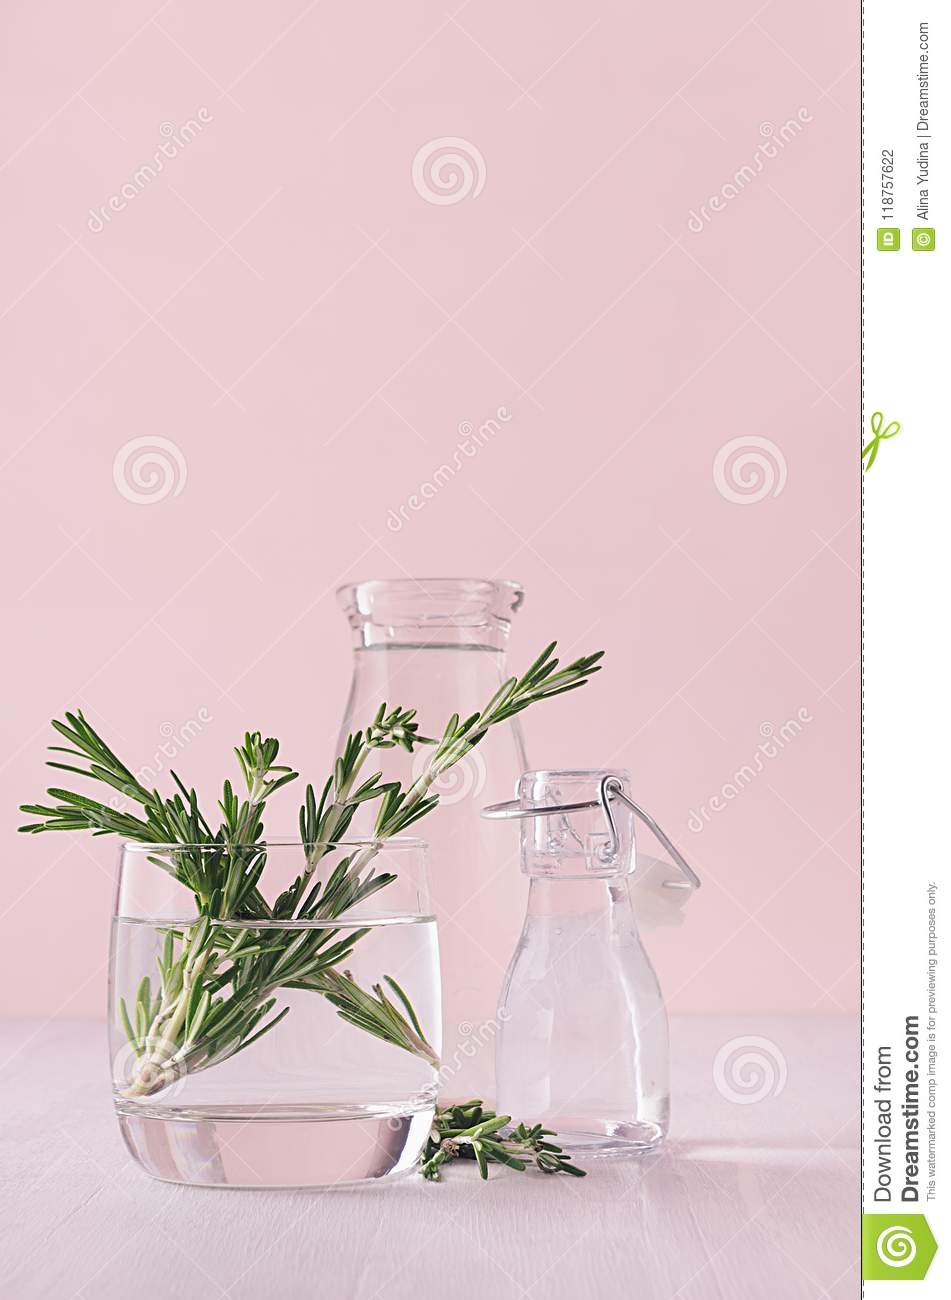 Elegance home eco decor - aromatic bouquet of fresh rosemary in glass vase on white table and fashion pink background.